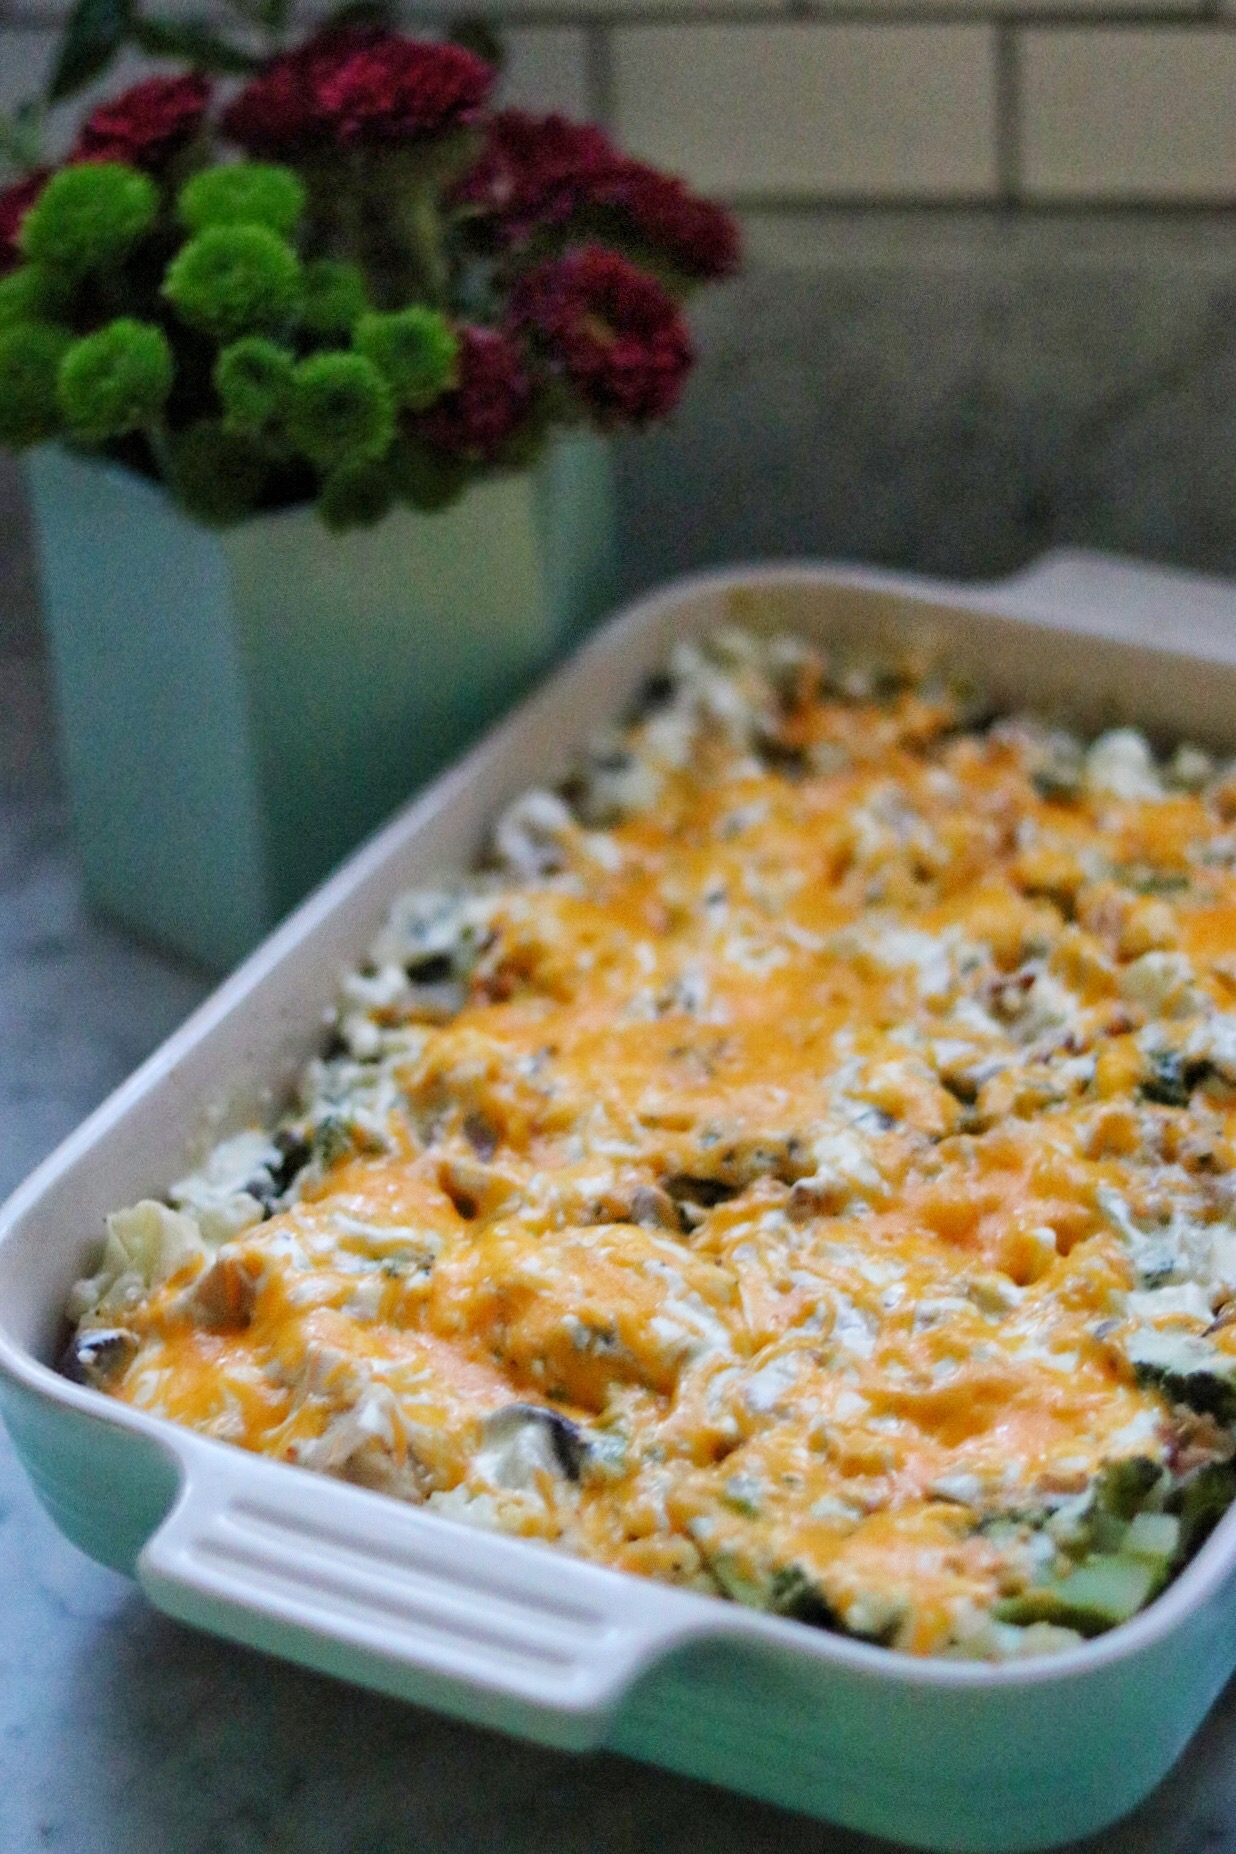 Keto Creamy Chicken and Vegetable Bake